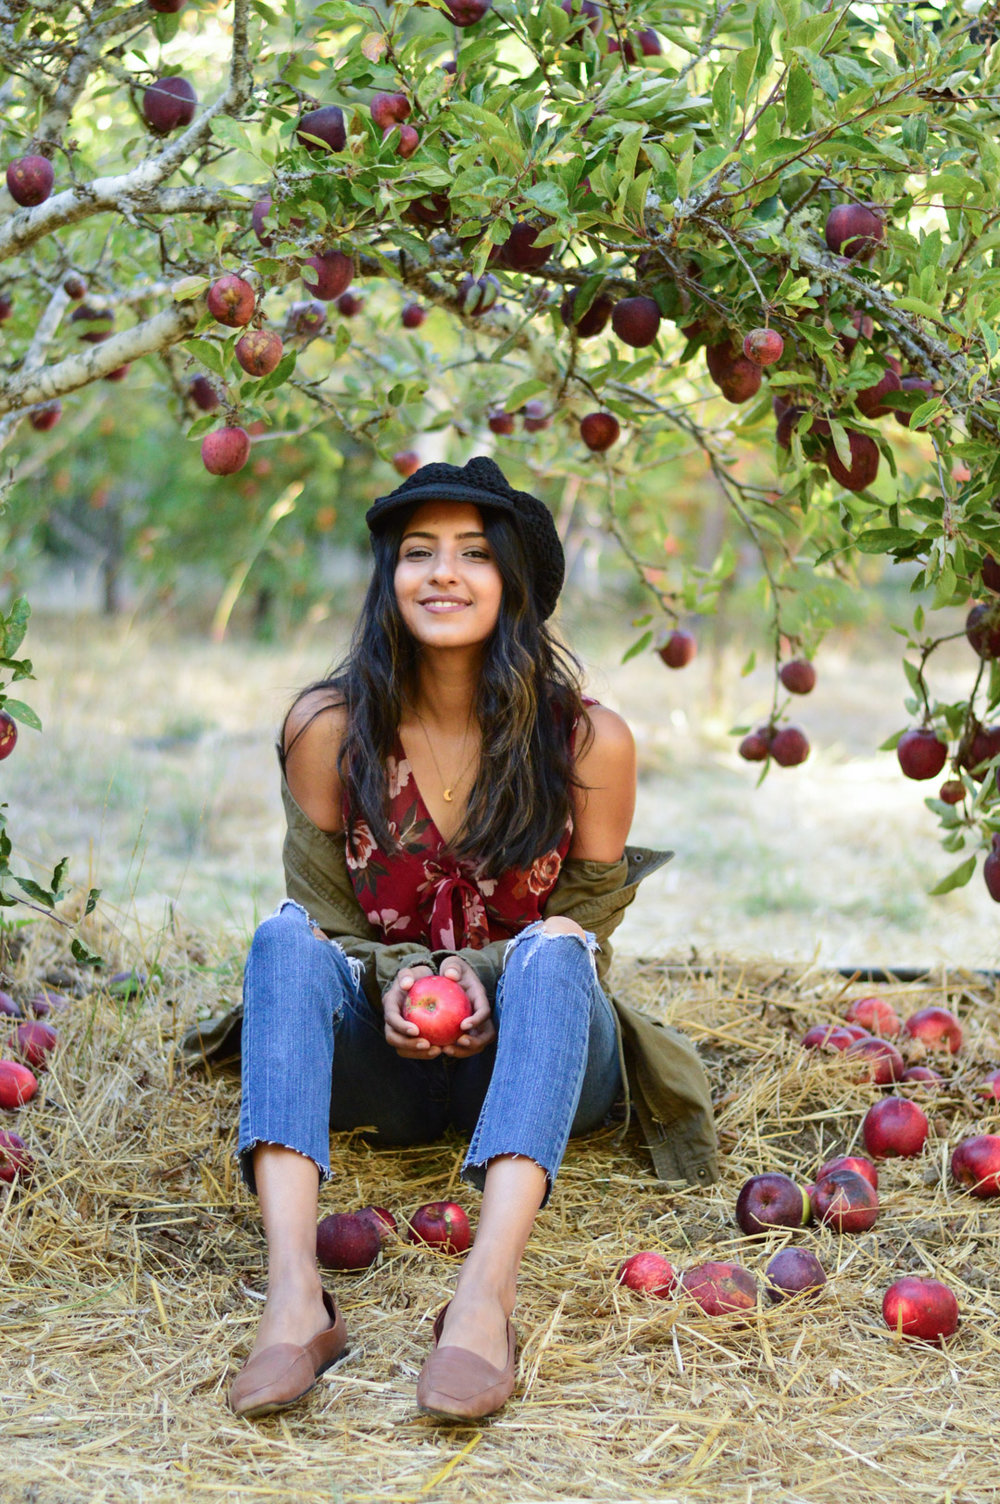 apple-picking-fall-florals-utility-jacket-california-style 5